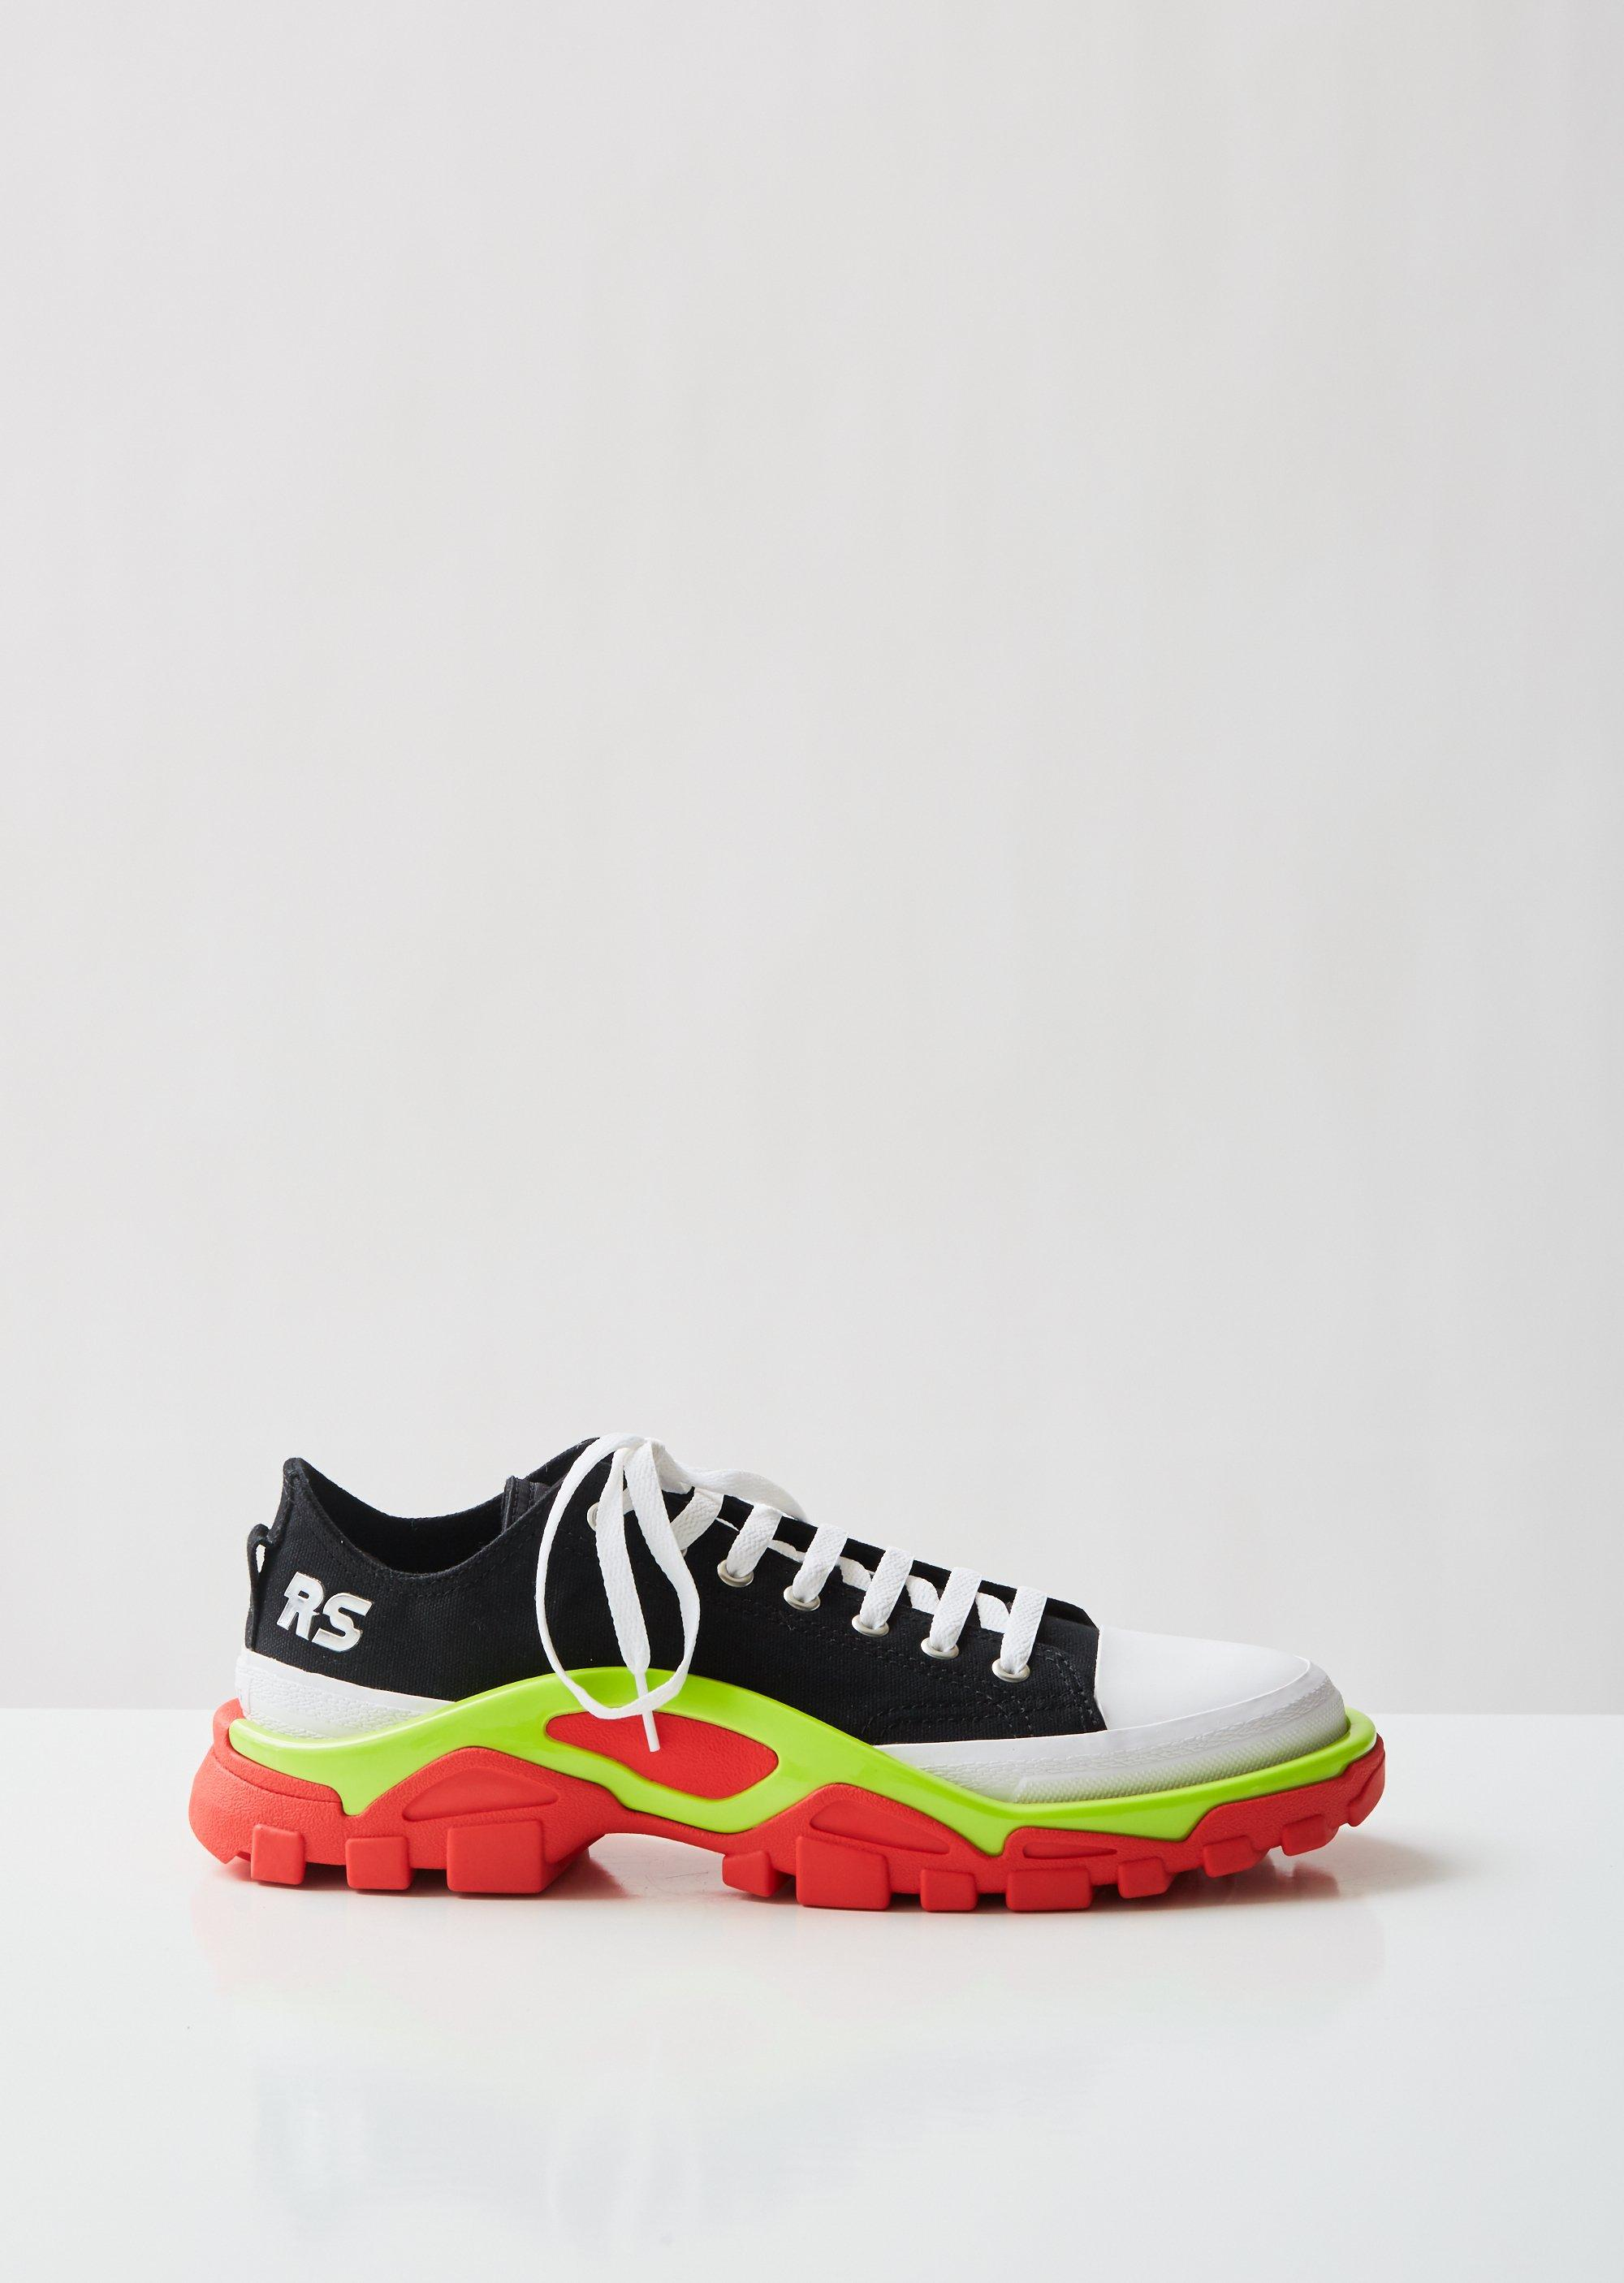 separation shoes 8551c b0e42 ... pretty nice d807d 62197 Adidas By Raf Simons - Multicolor Rs Detroit  Runner for Men -